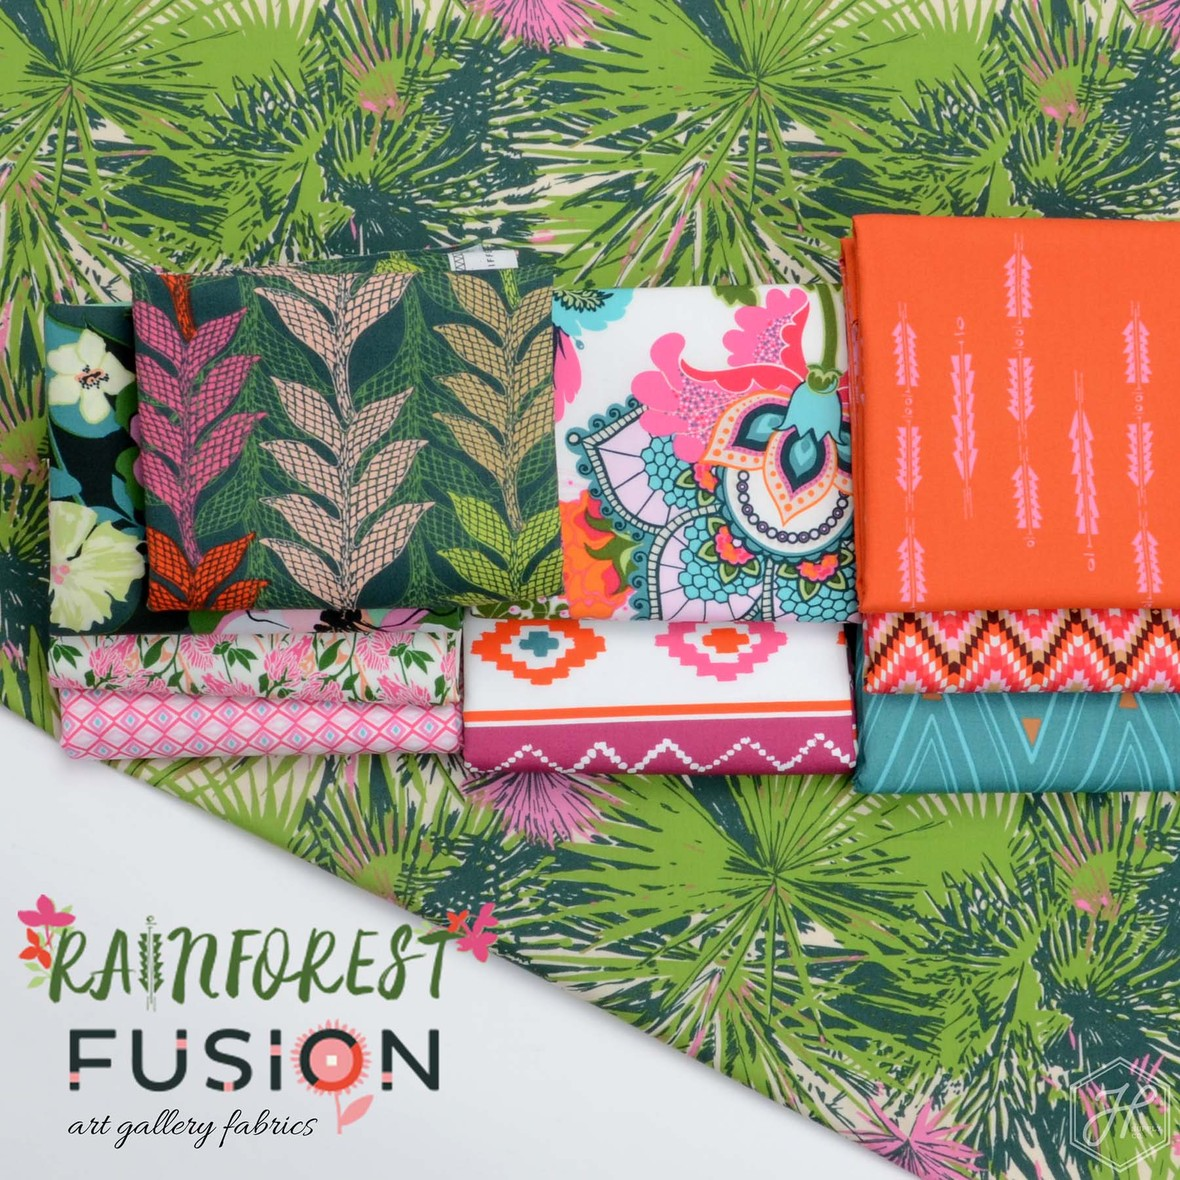 Rainforest Fusion Fabric Poster Art Gallery Fabrics at Hawthorne Supply Co